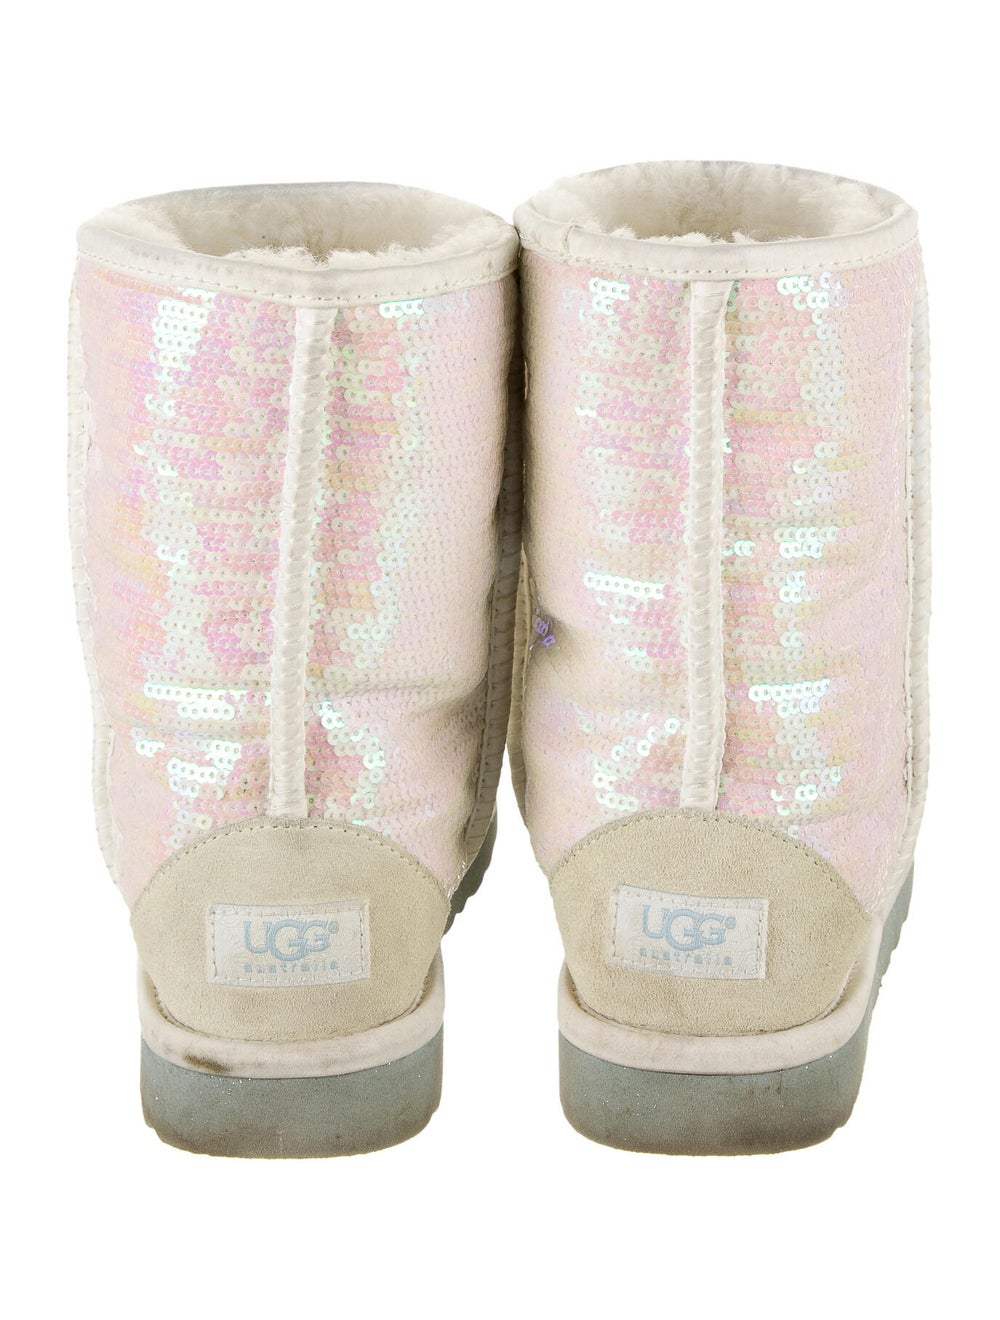 UGG Boots Pink - image 4